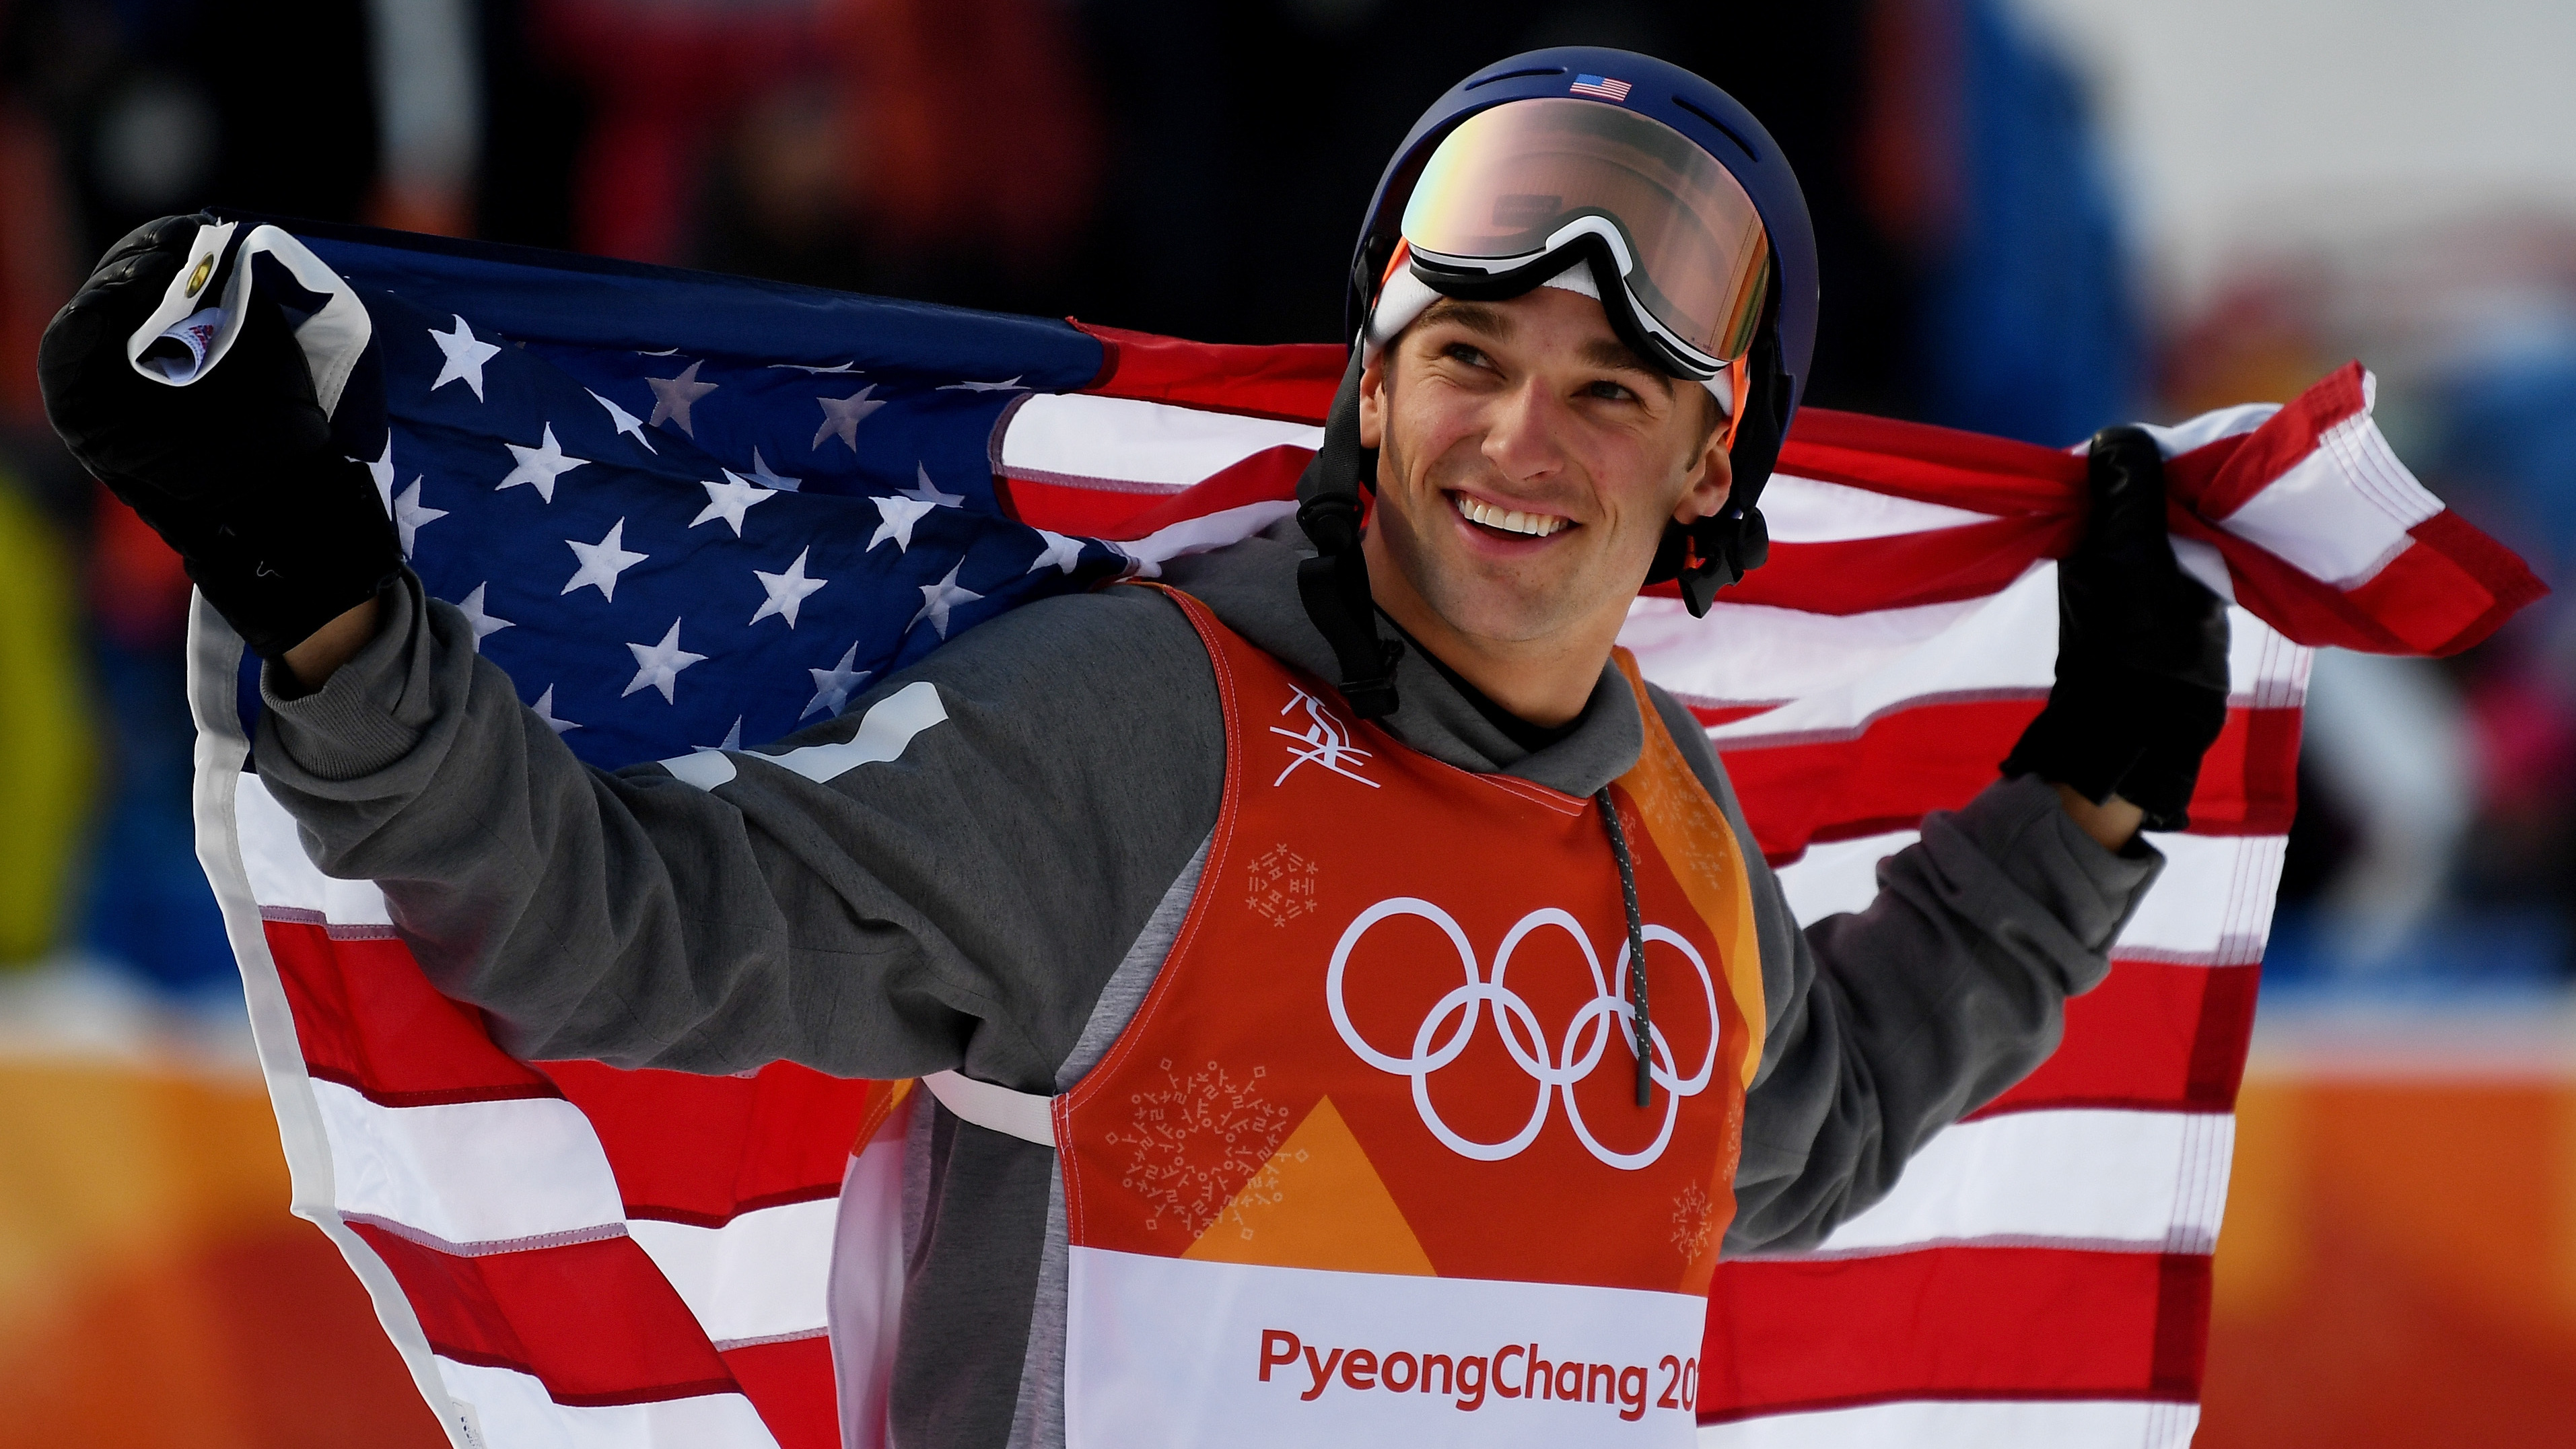 Goepper Salvages Silver for U.S. in Ski Slopestyle